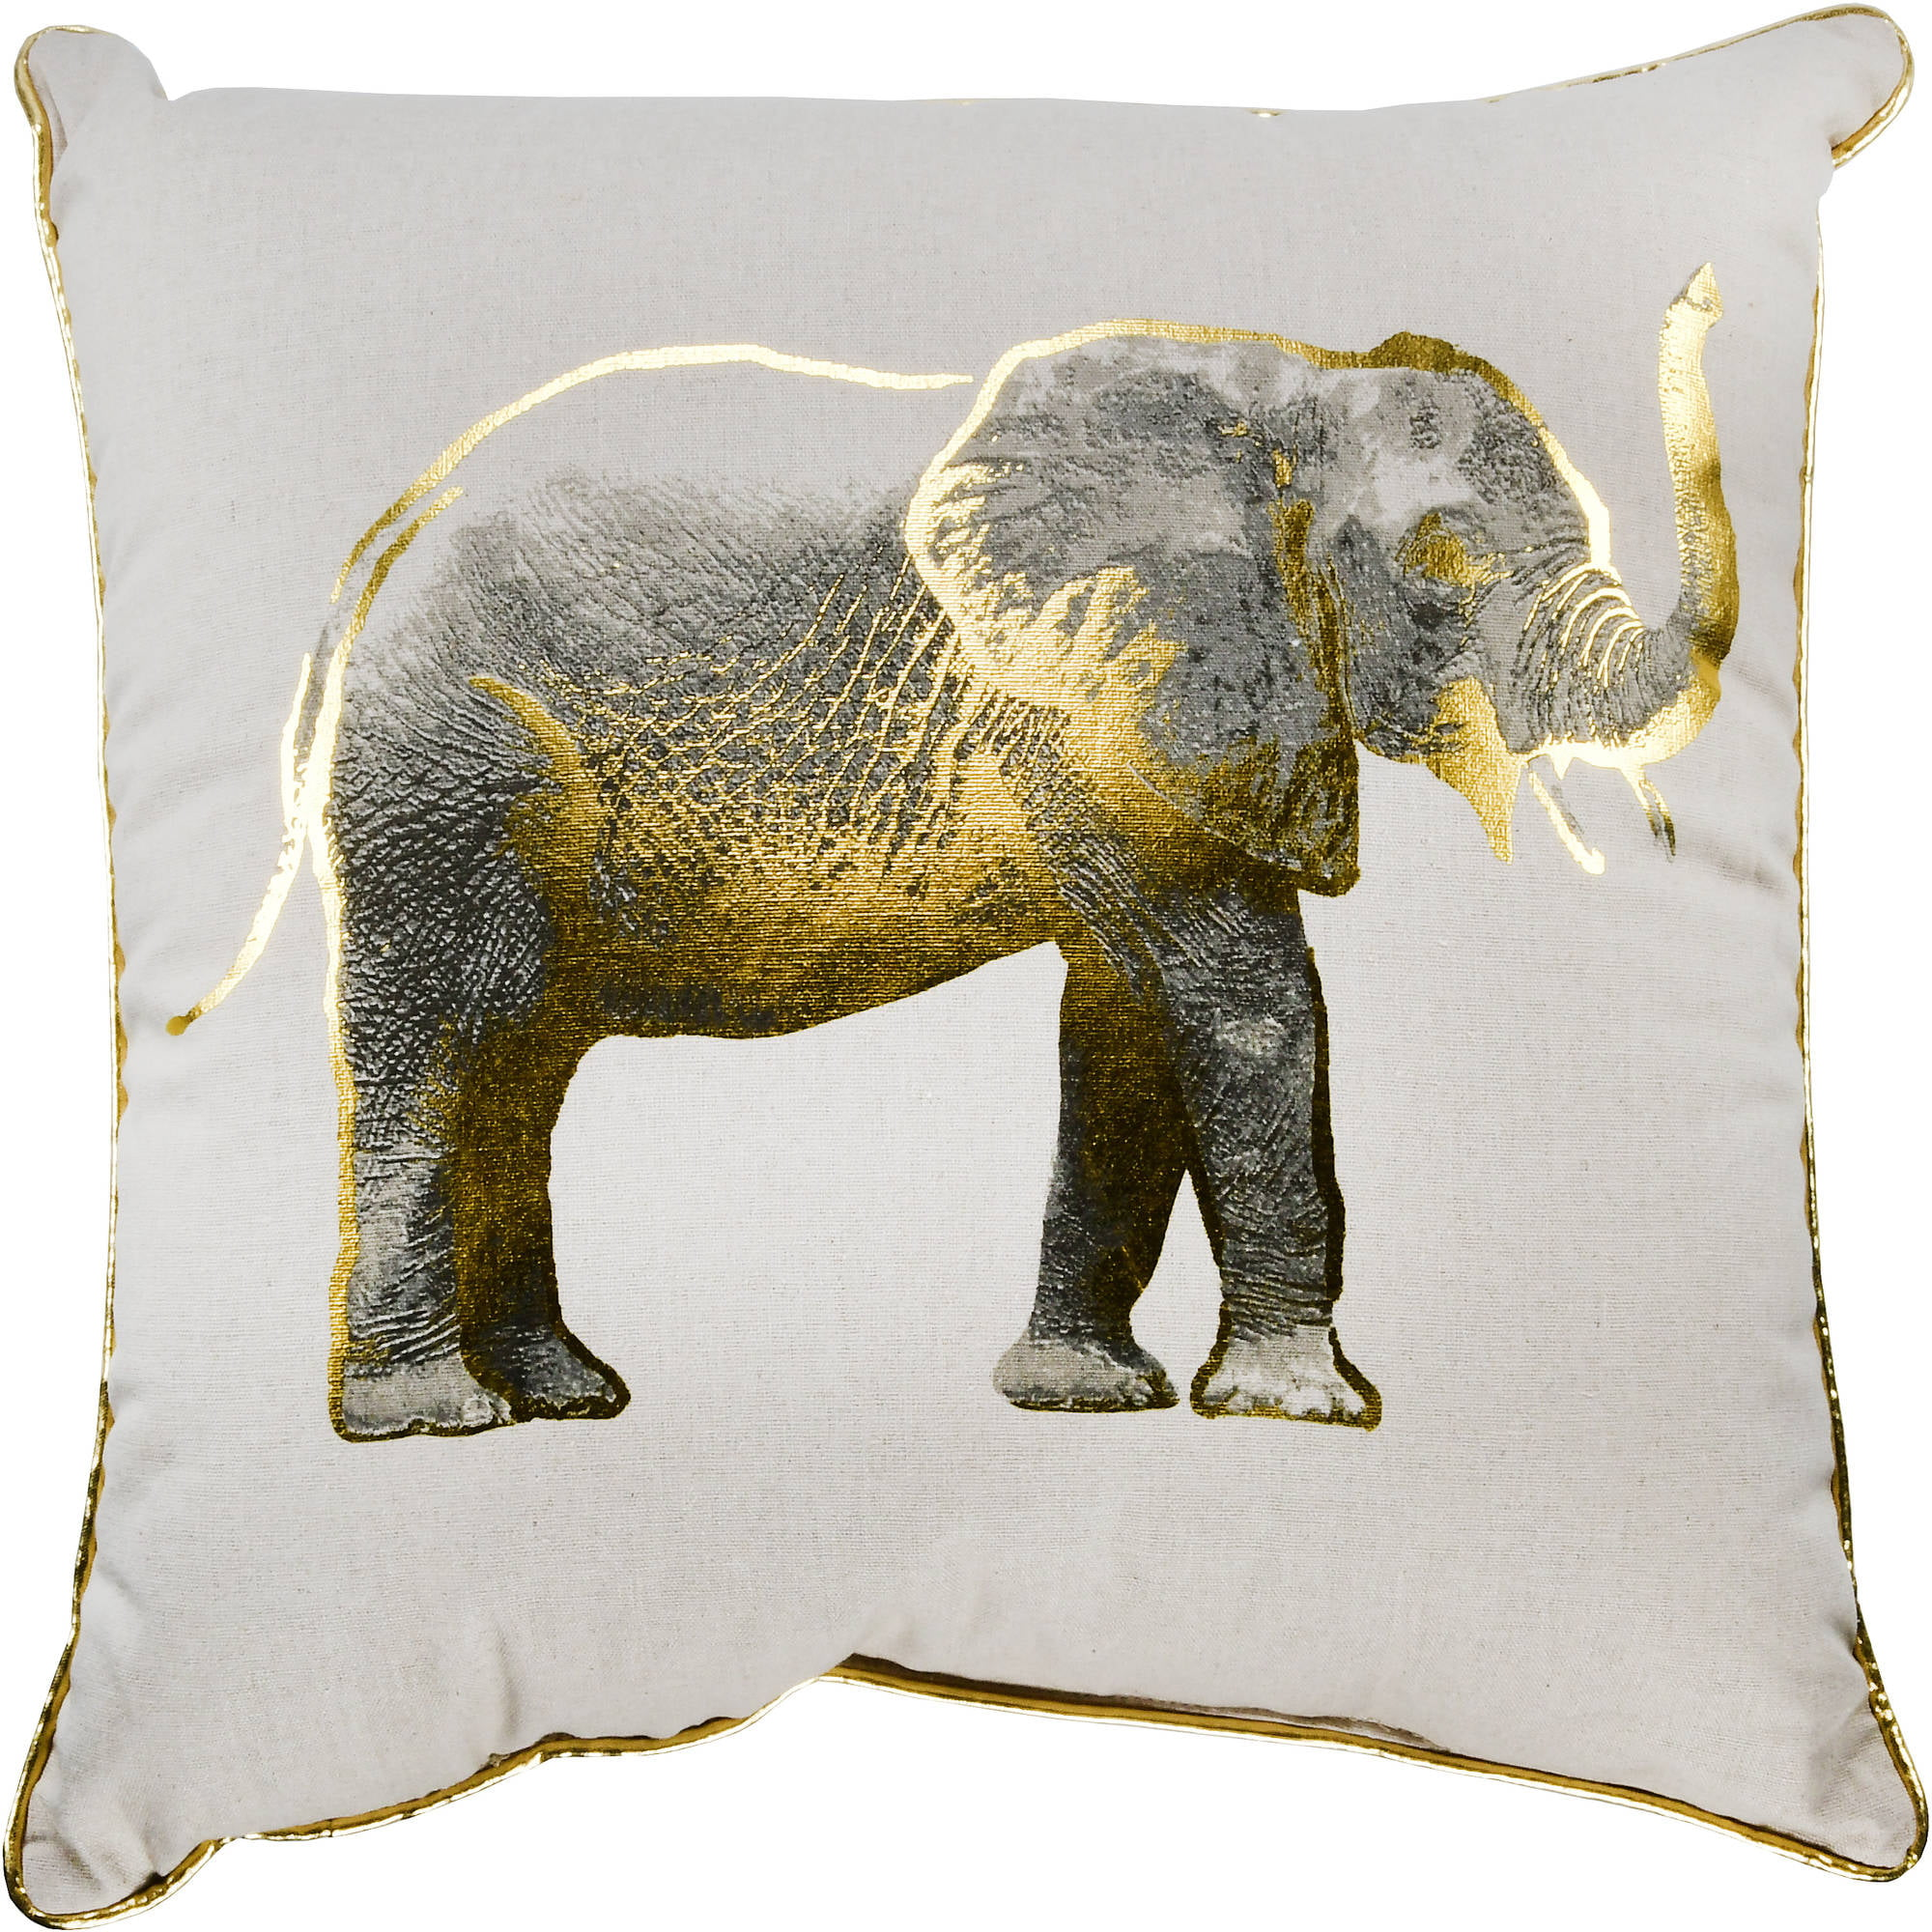 Better Homes and Gardens Gold Elephant Decorative Throw Pillow e6bcff4b40